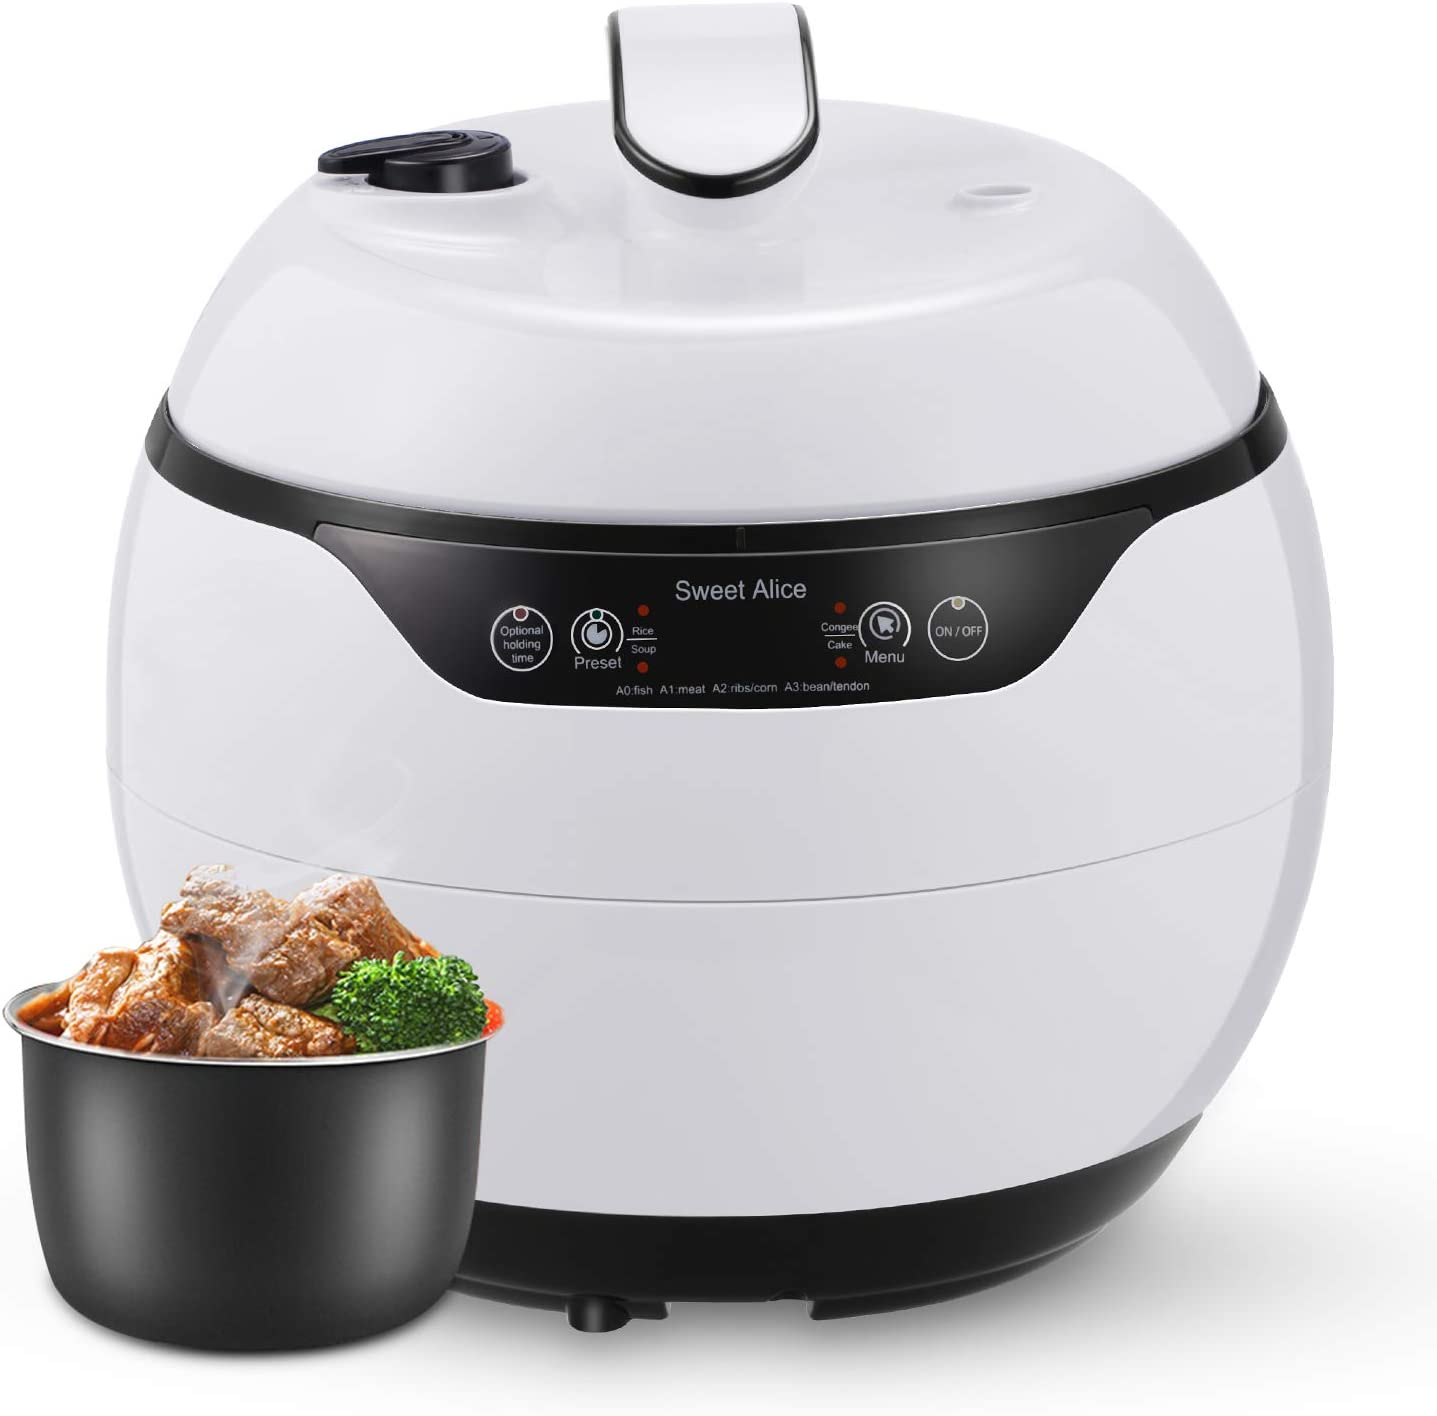 Smart Pressure Cooker, 4qt Electric Rice Cooker Multi Function instant Digital pot Non-stick Preset Steamer quick Pot 24h Warmer with time display